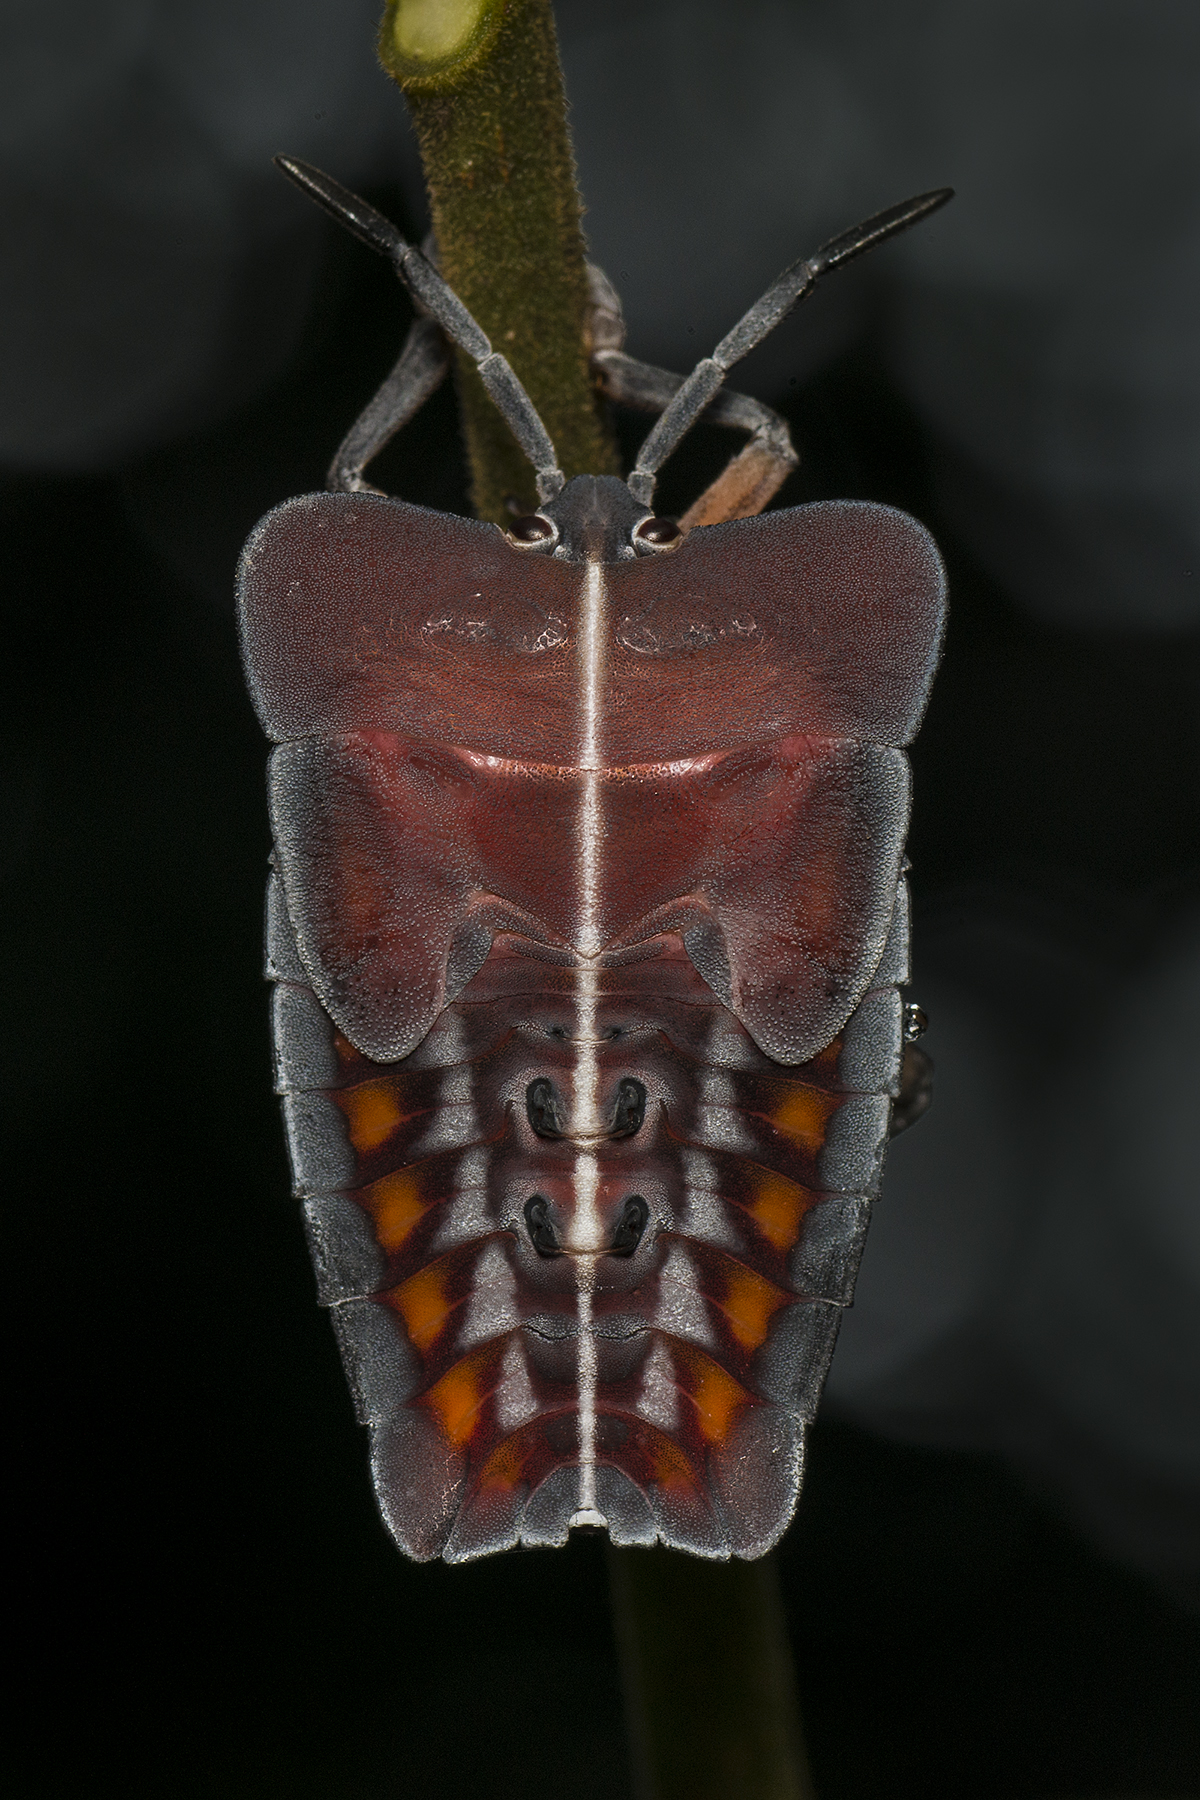 Nymph of Tessaratoma plant bug